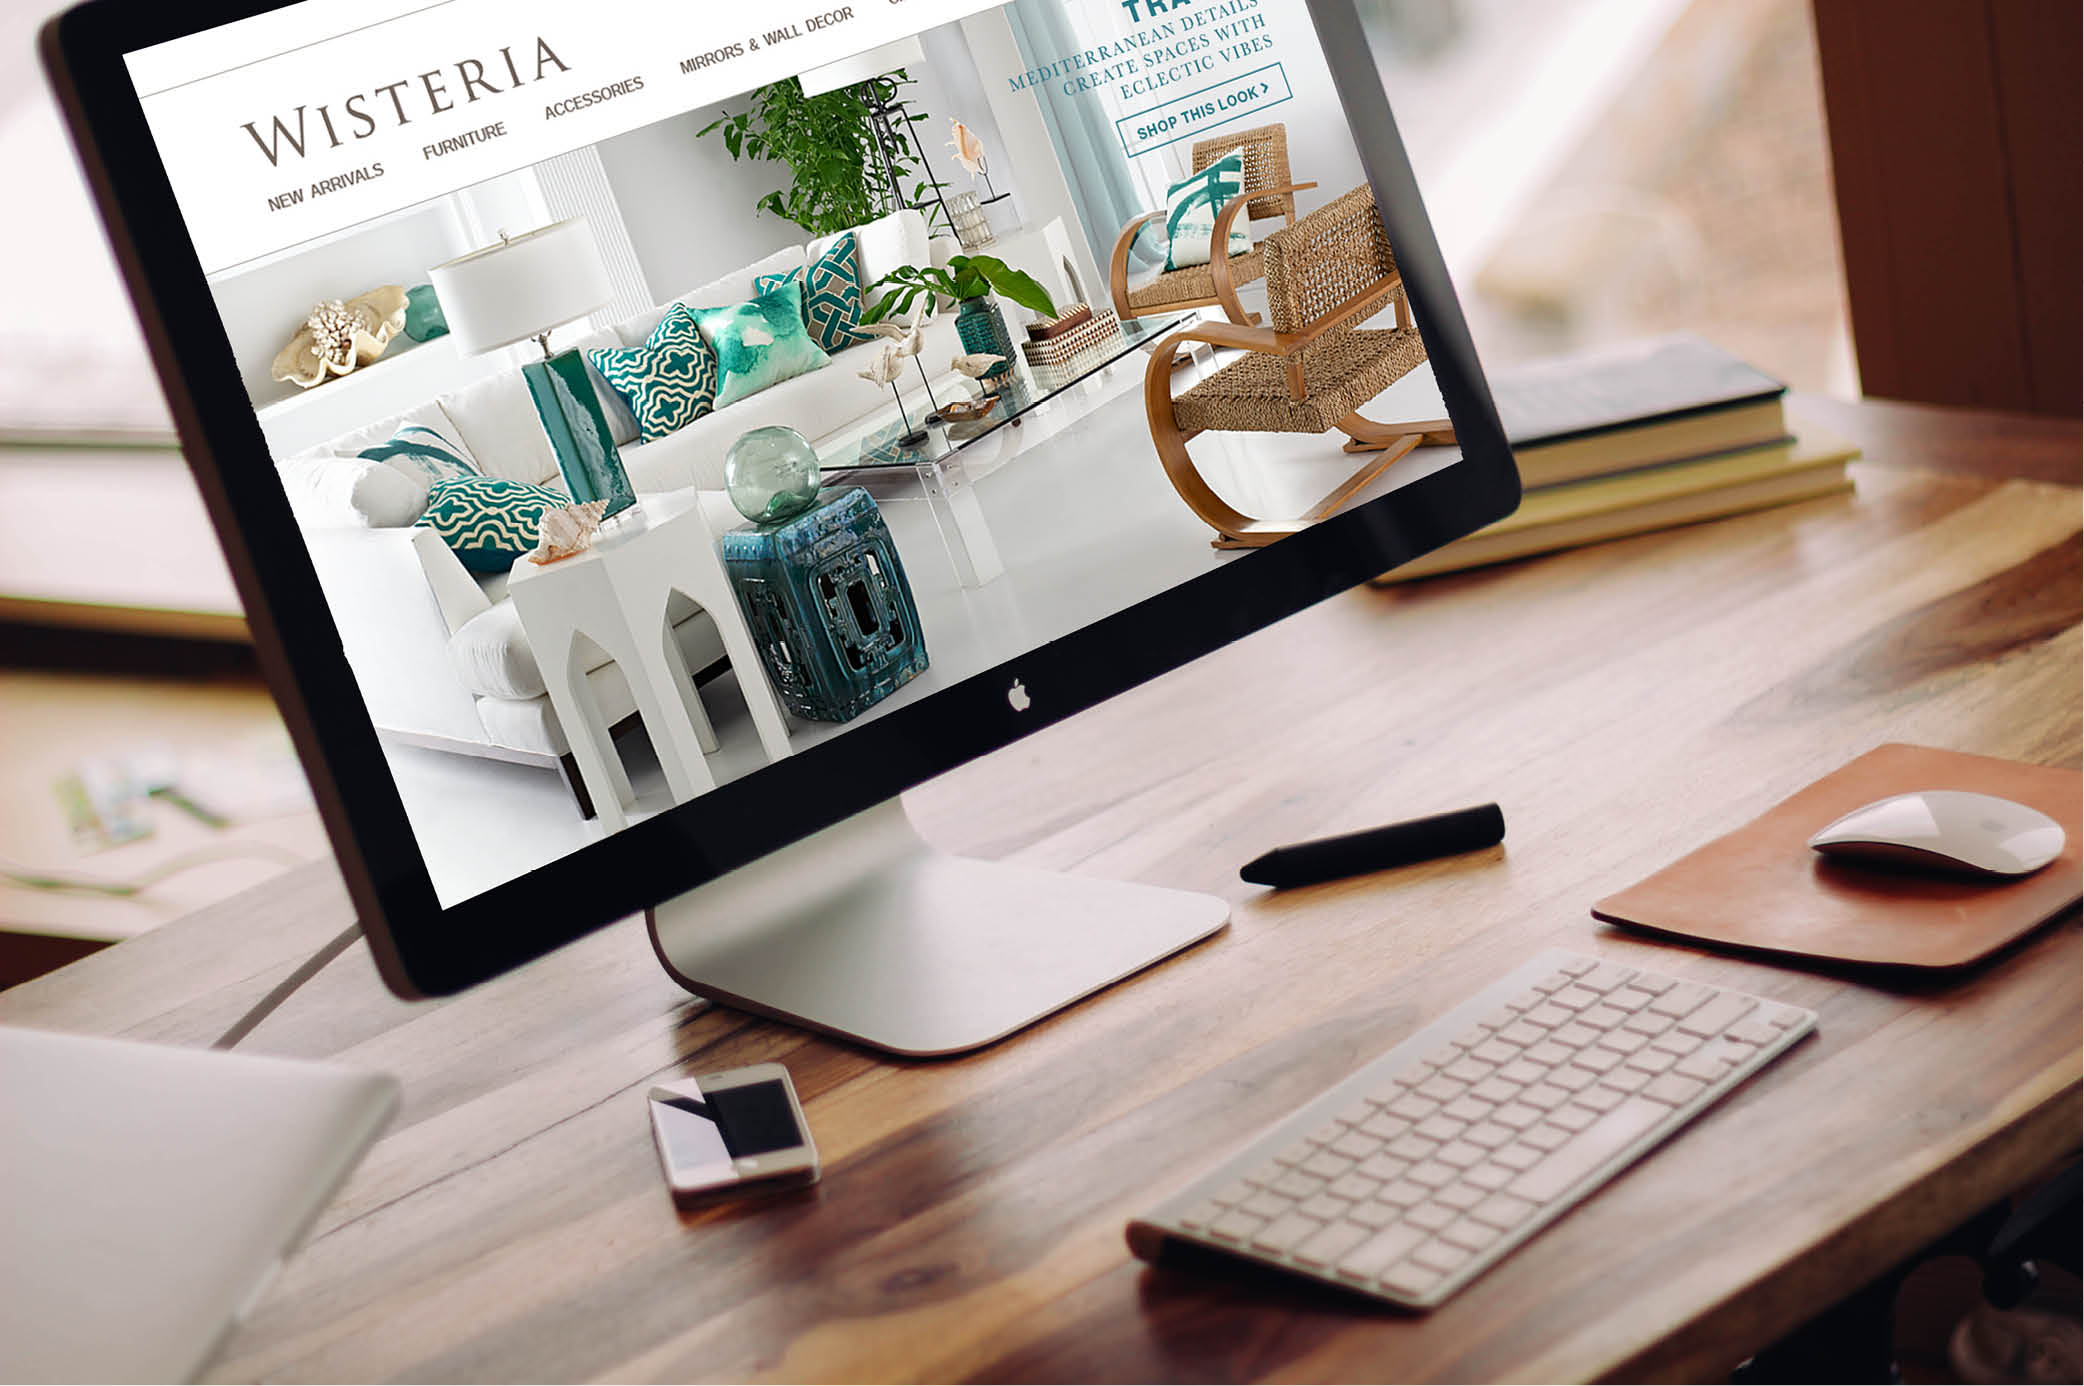 Wisteria Home Furnishings & Decor, Web Design, Jessica Oviedo